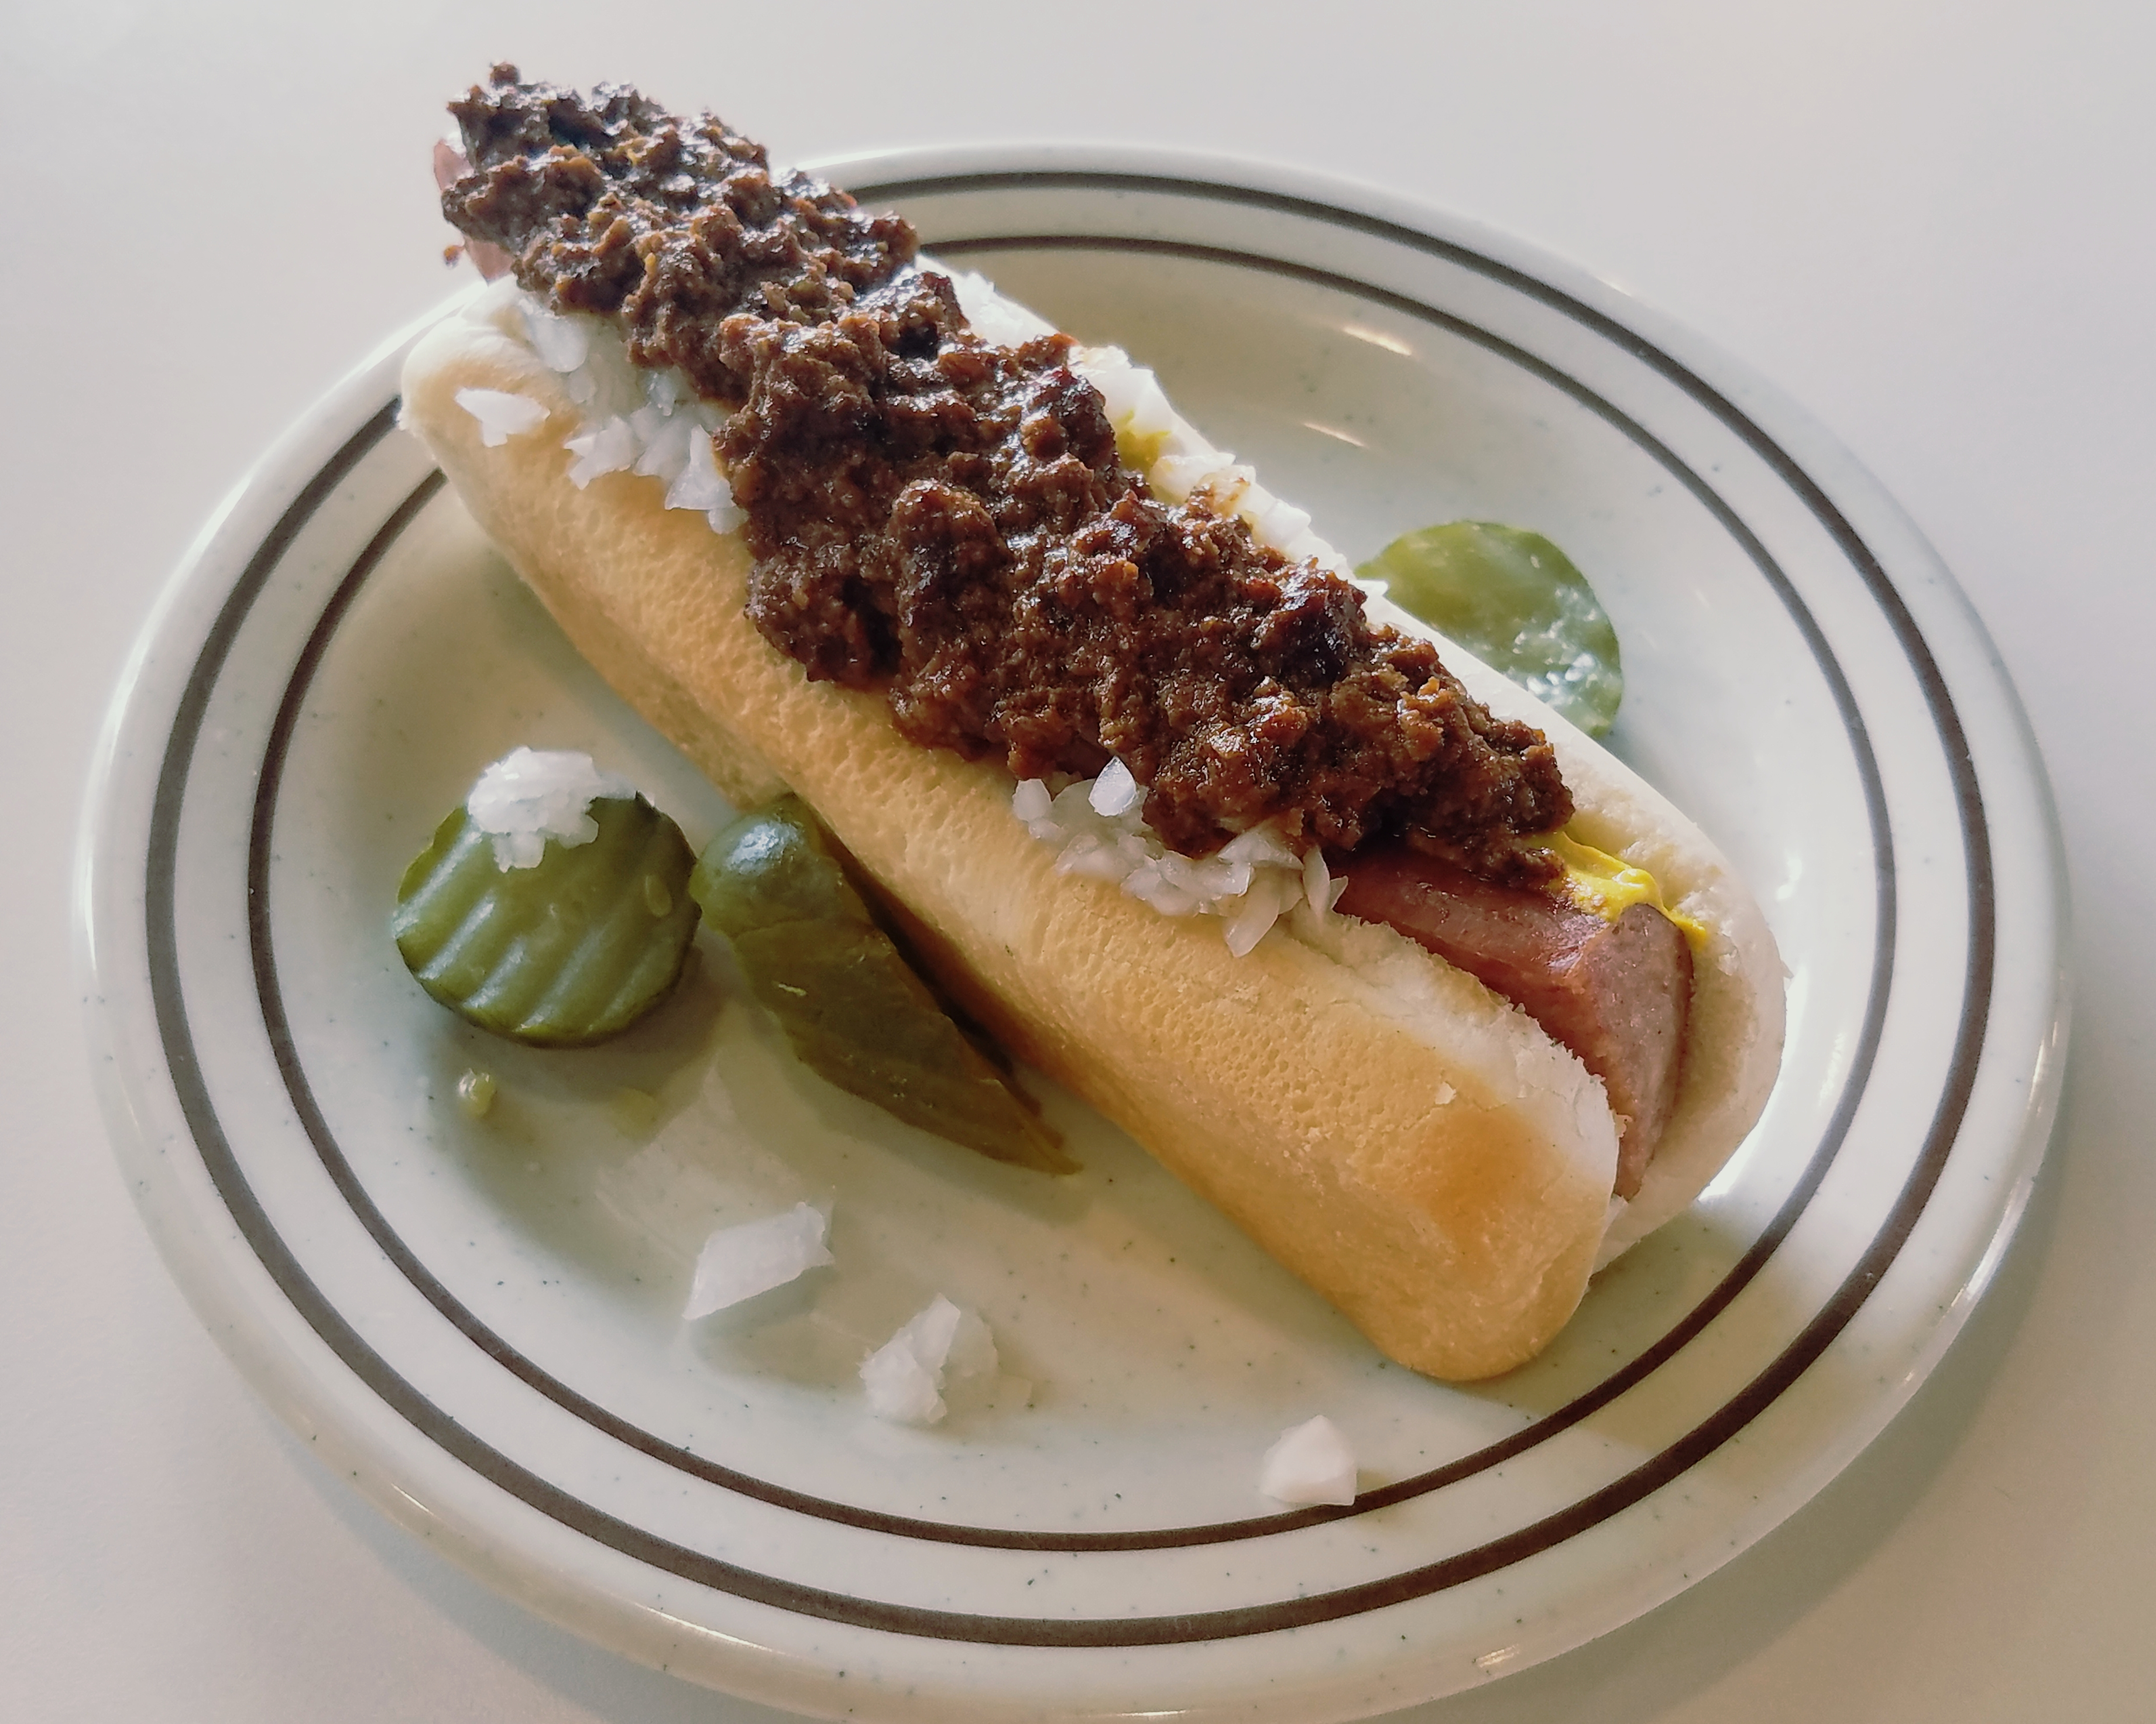 cheap eats tony packo 39 s classic hungarian chili dogs are a frugal favorite the blade. Black Bedroom Furniture Sets. Home Design Ideas